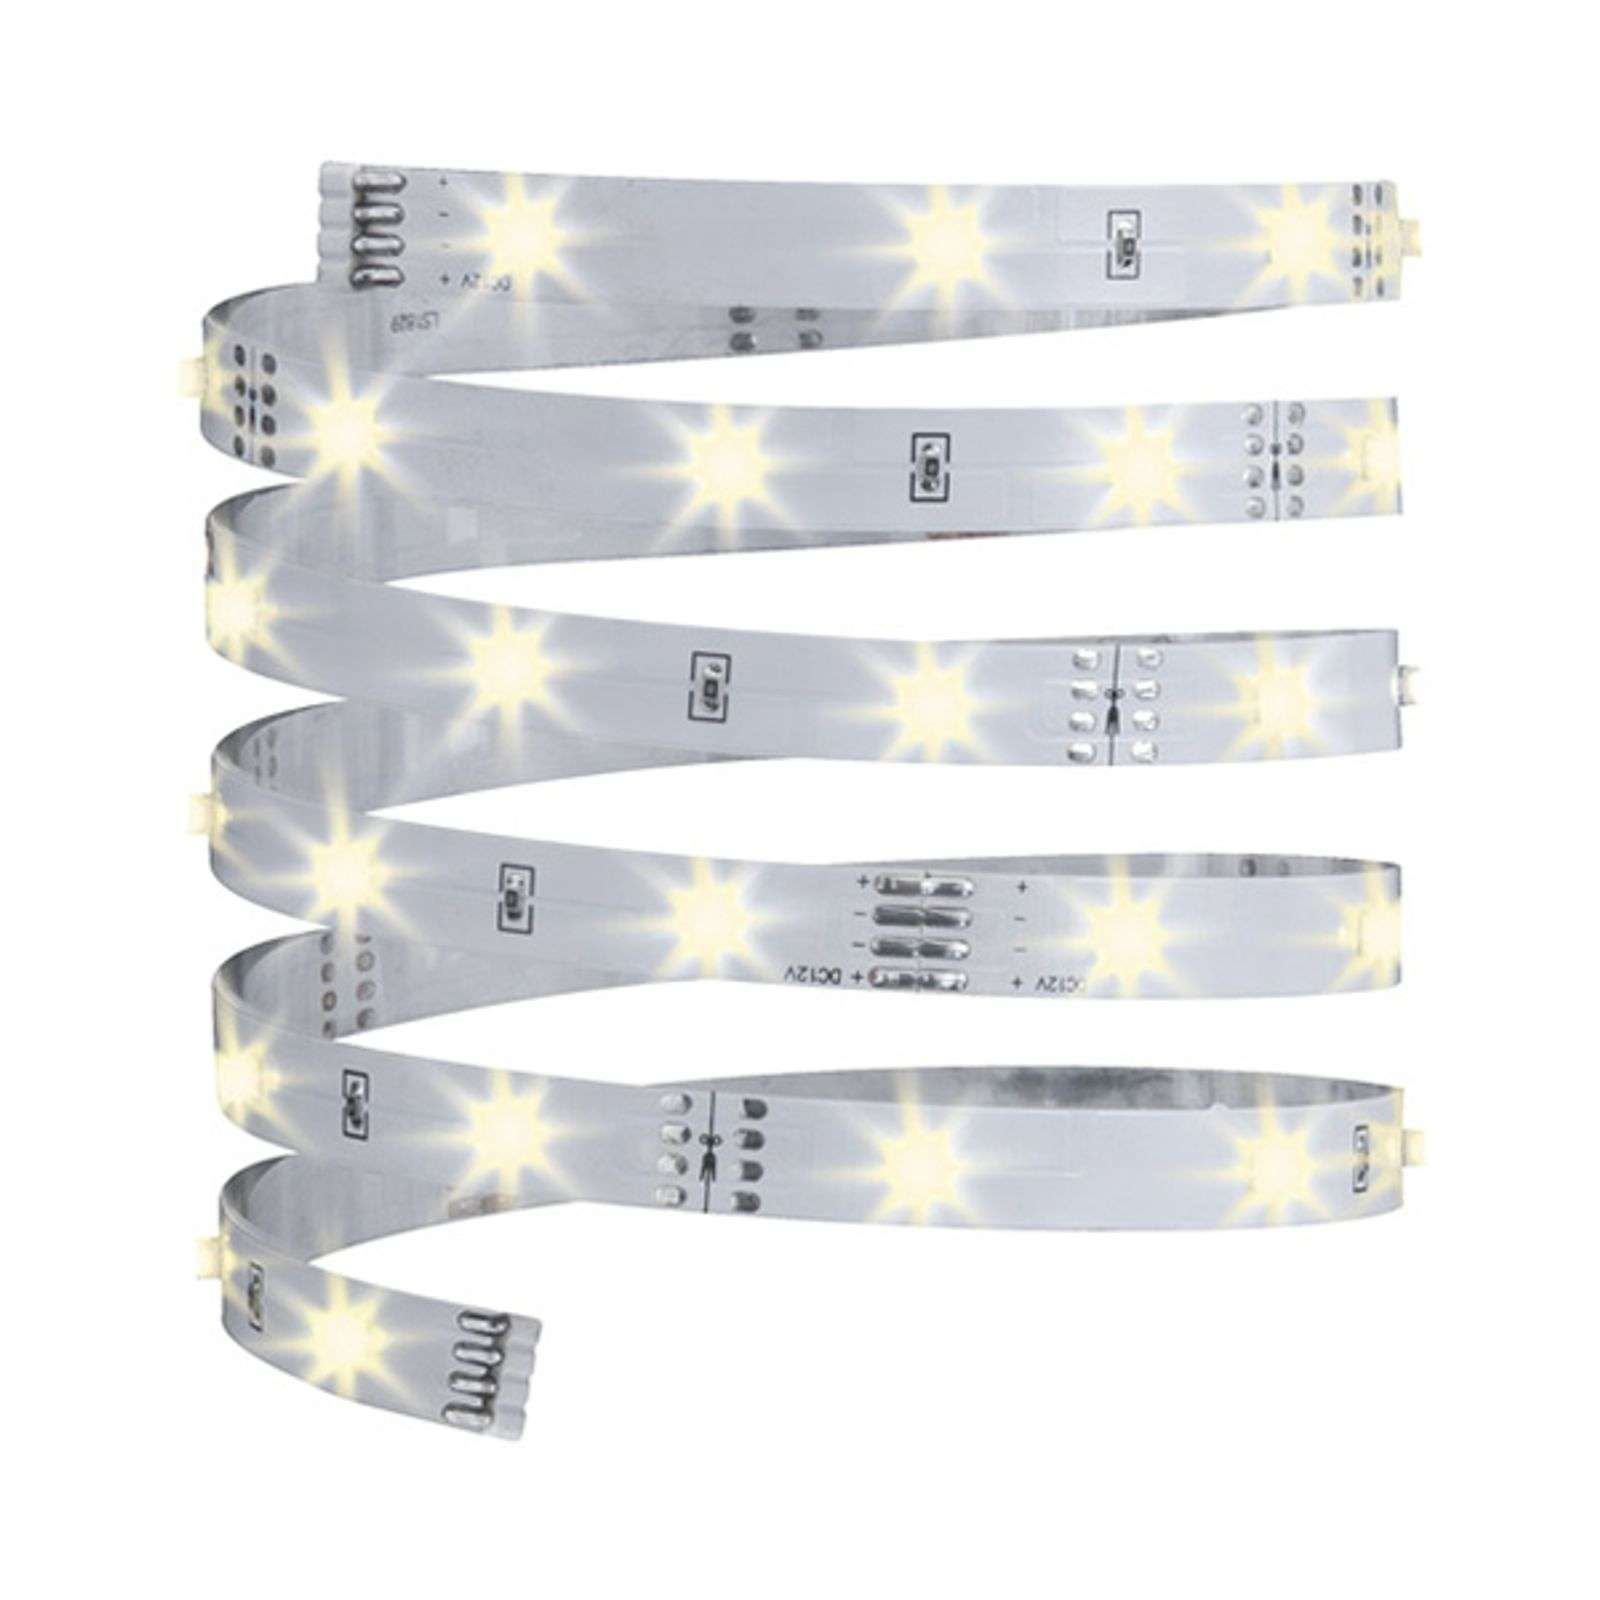 Strip LED da 3 m YourLED Eco, bianco, luce calda